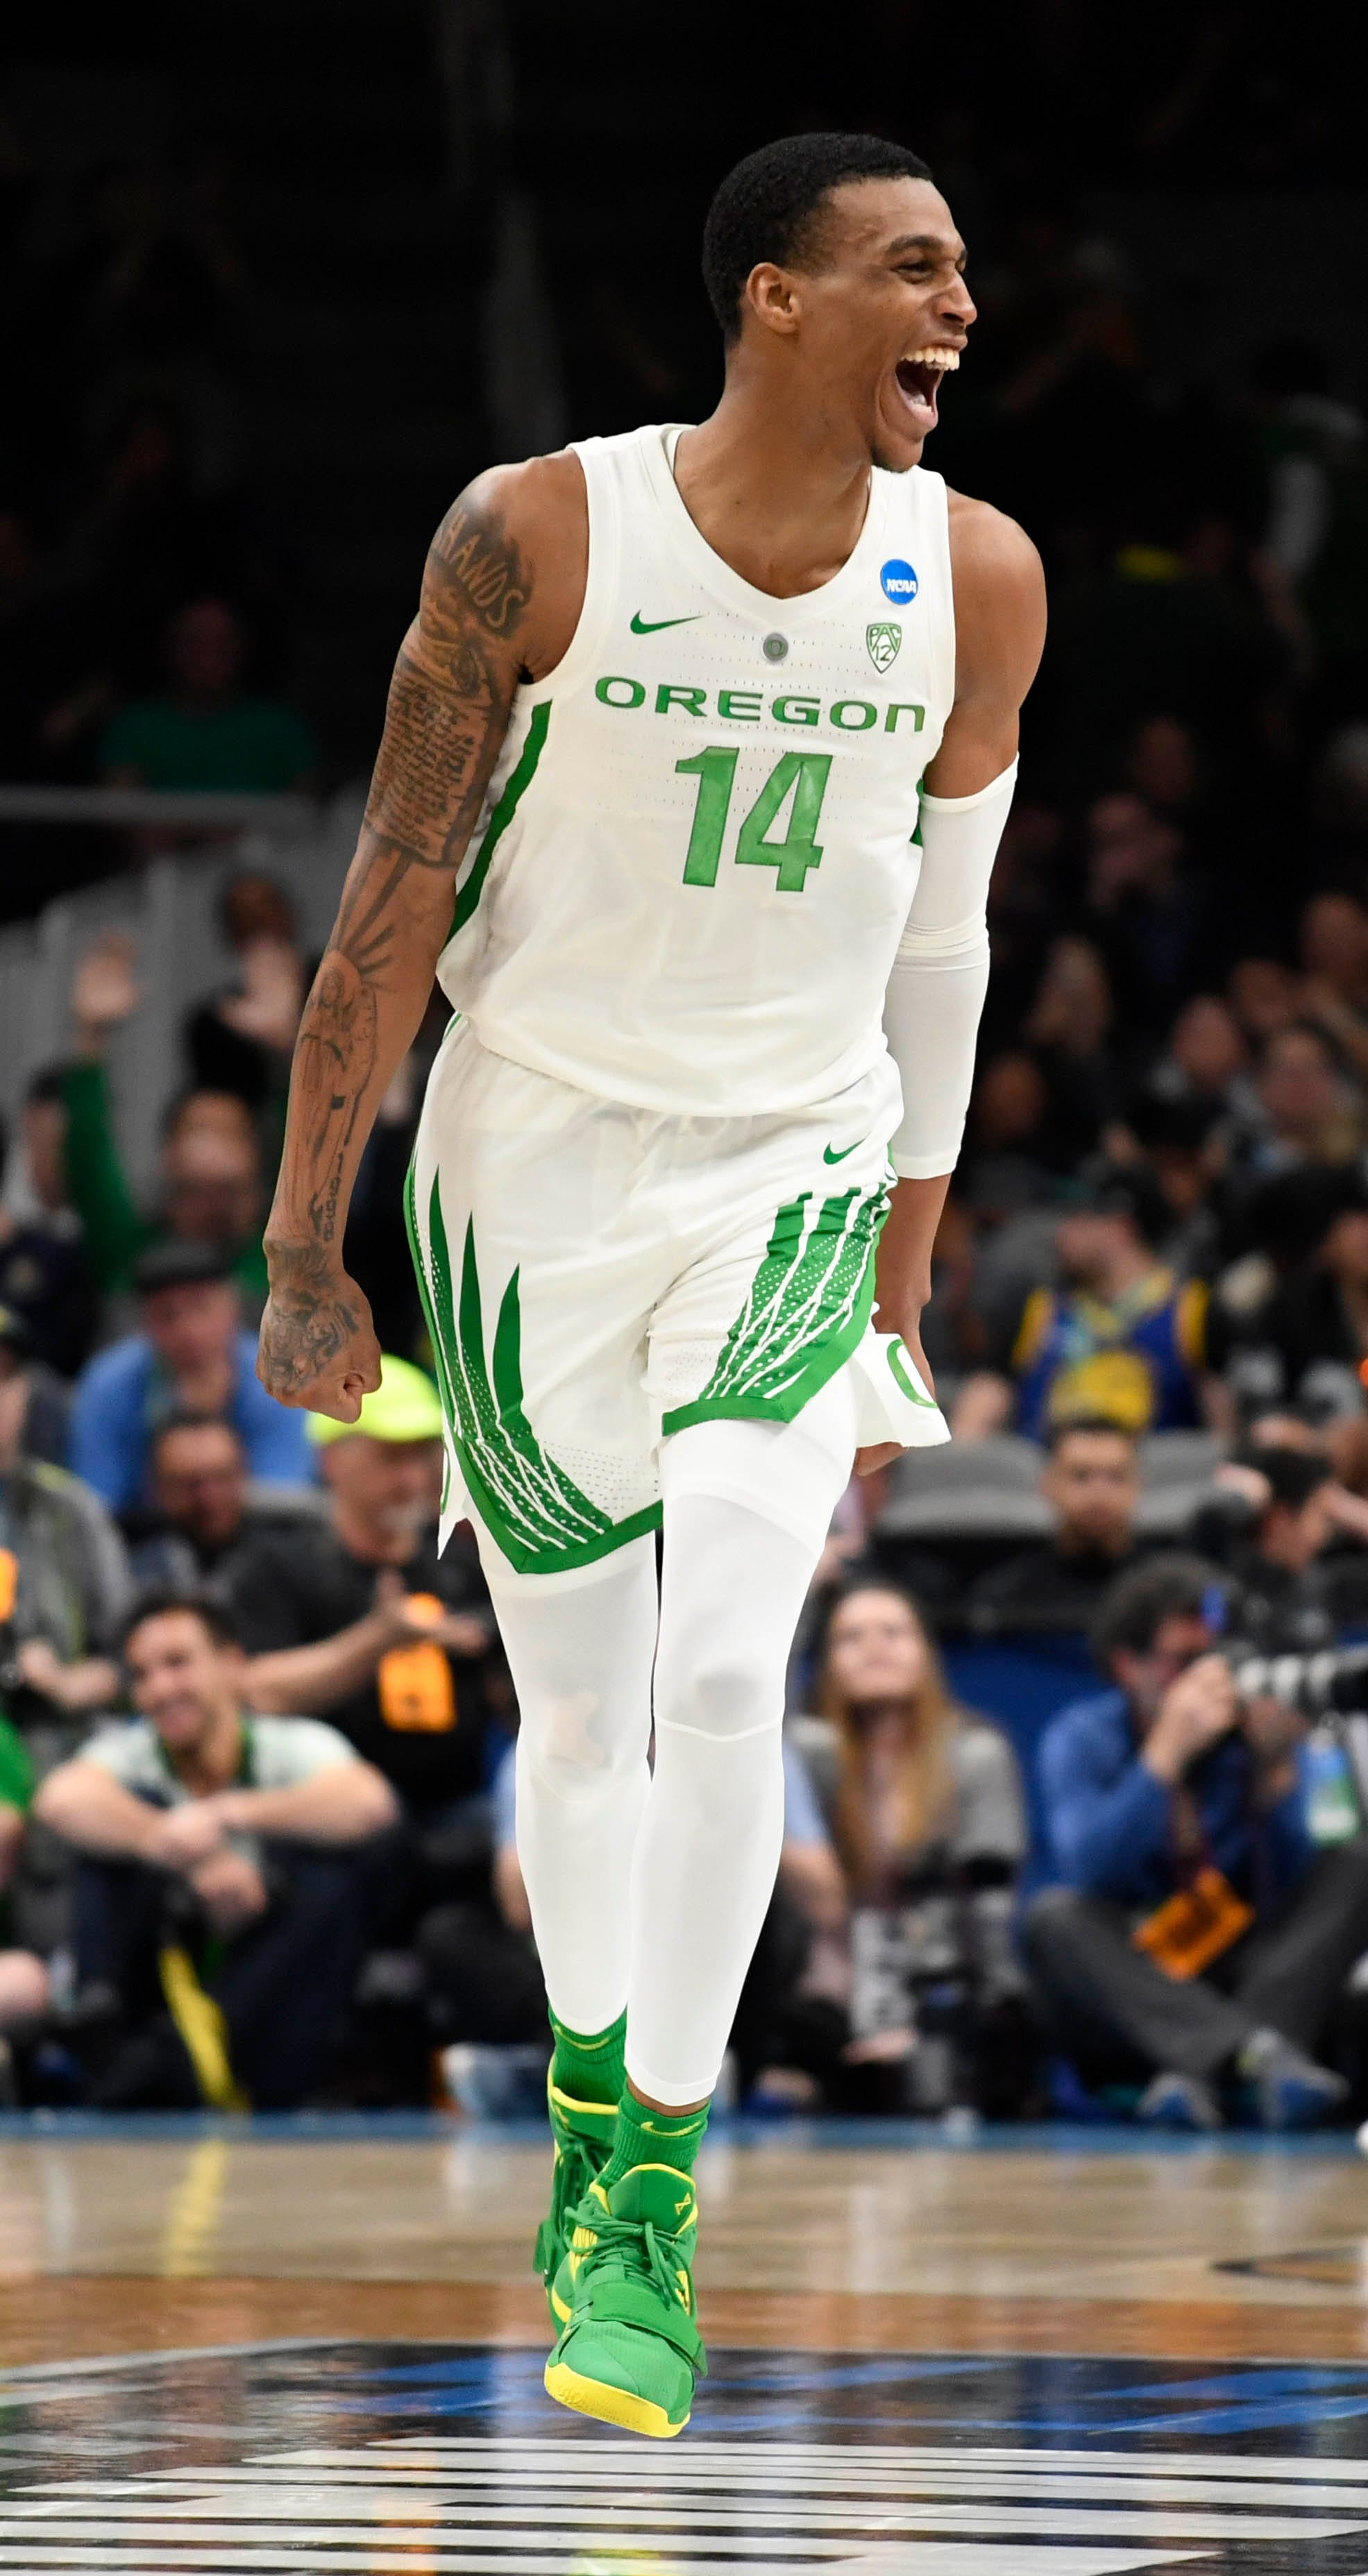 oregon-survives-cold-spell-to-knock-out-uc-irvine-and-advance-to-sweet-16